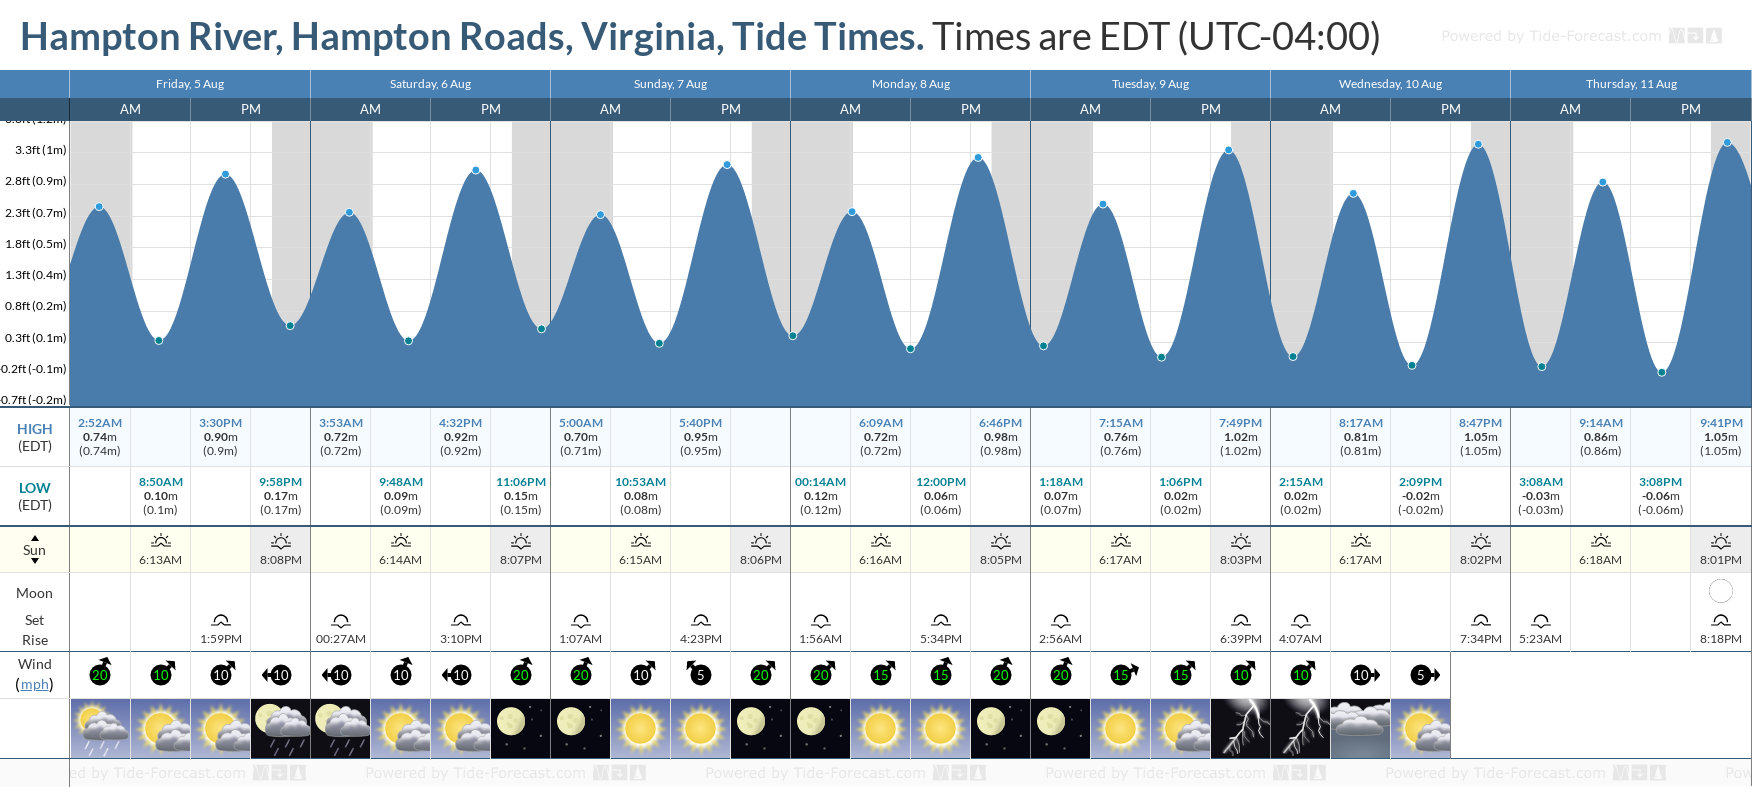 Hampton River, Hampton Roads, Virginia Tide Chart including high and low tide tide times for the next 7 days